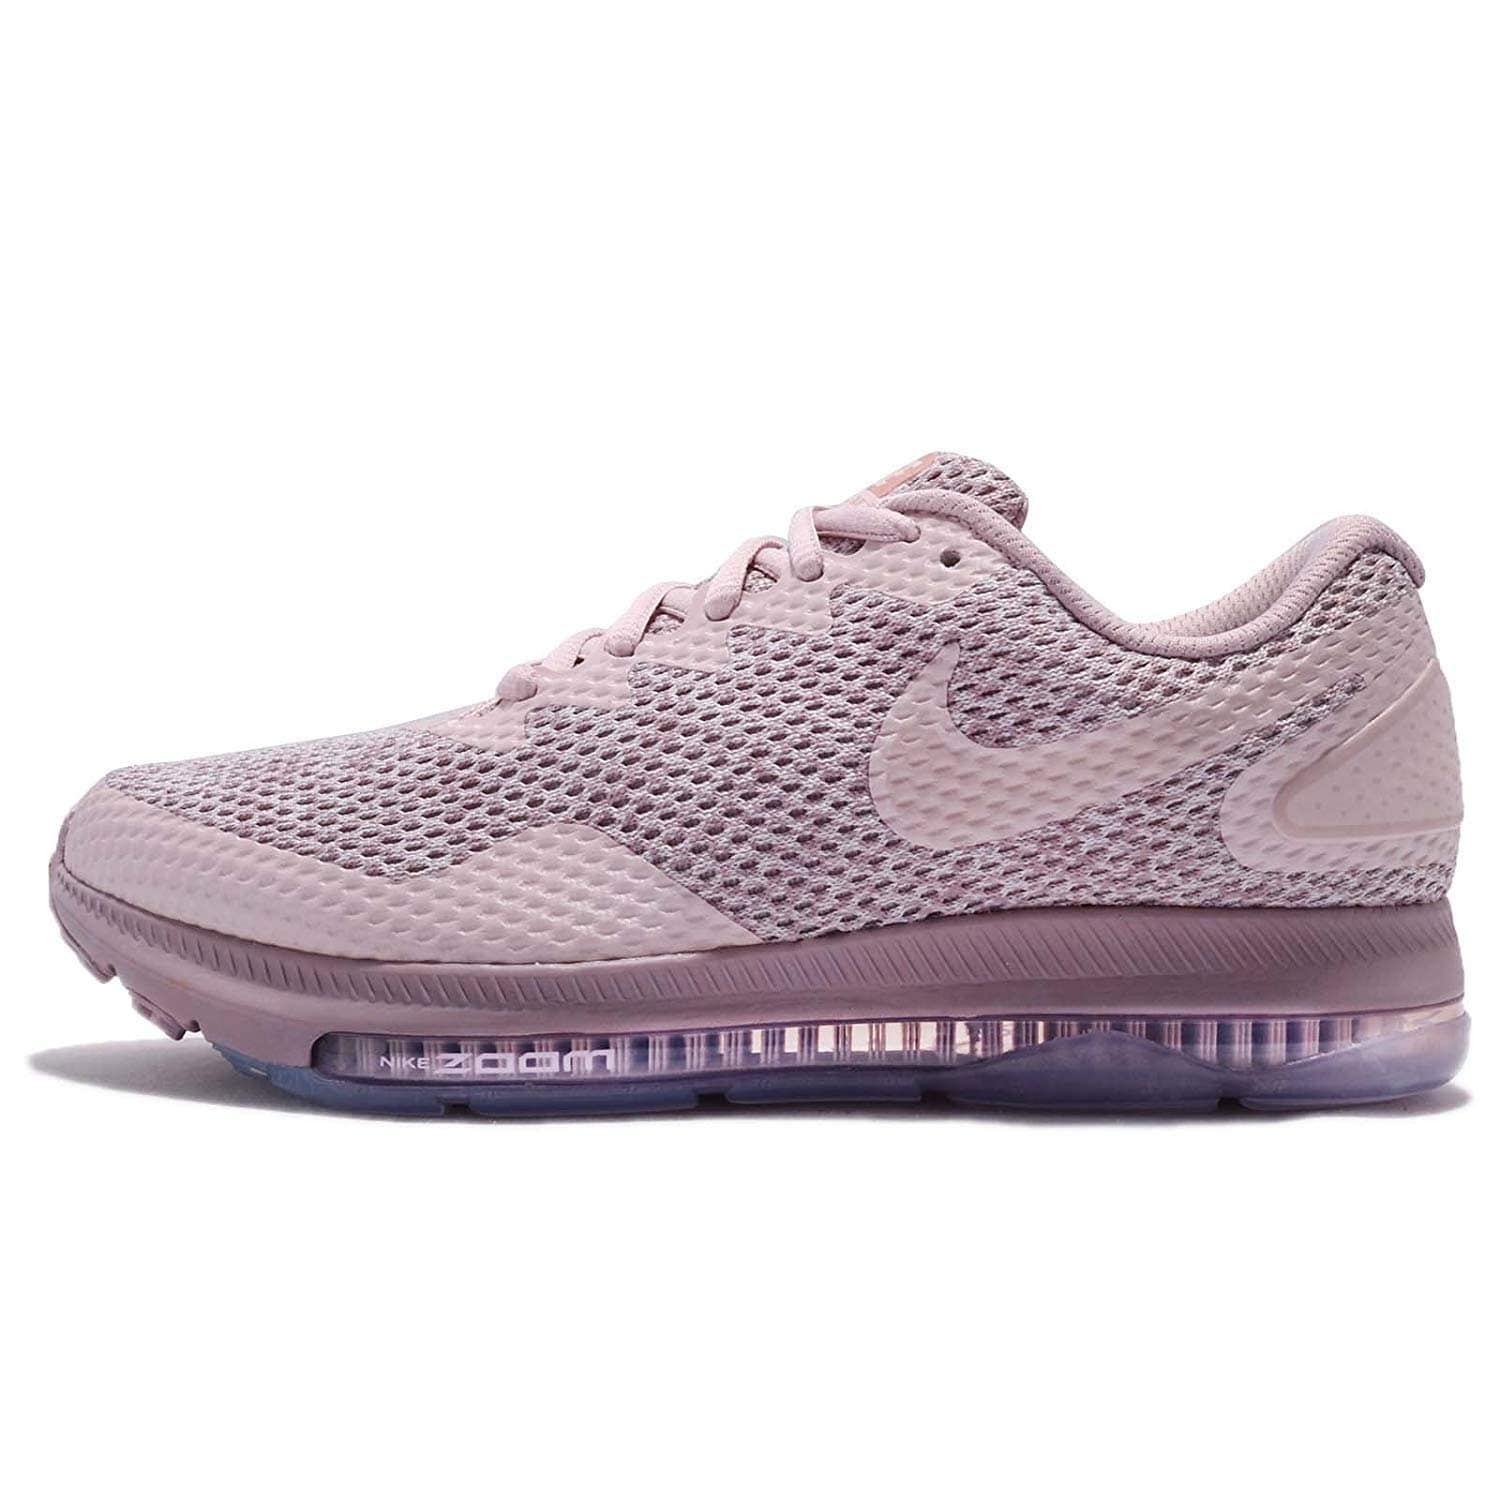 83e90921dcf0 Shop Nike Clothing & Shoes | Discover our Best Deals at Overstock